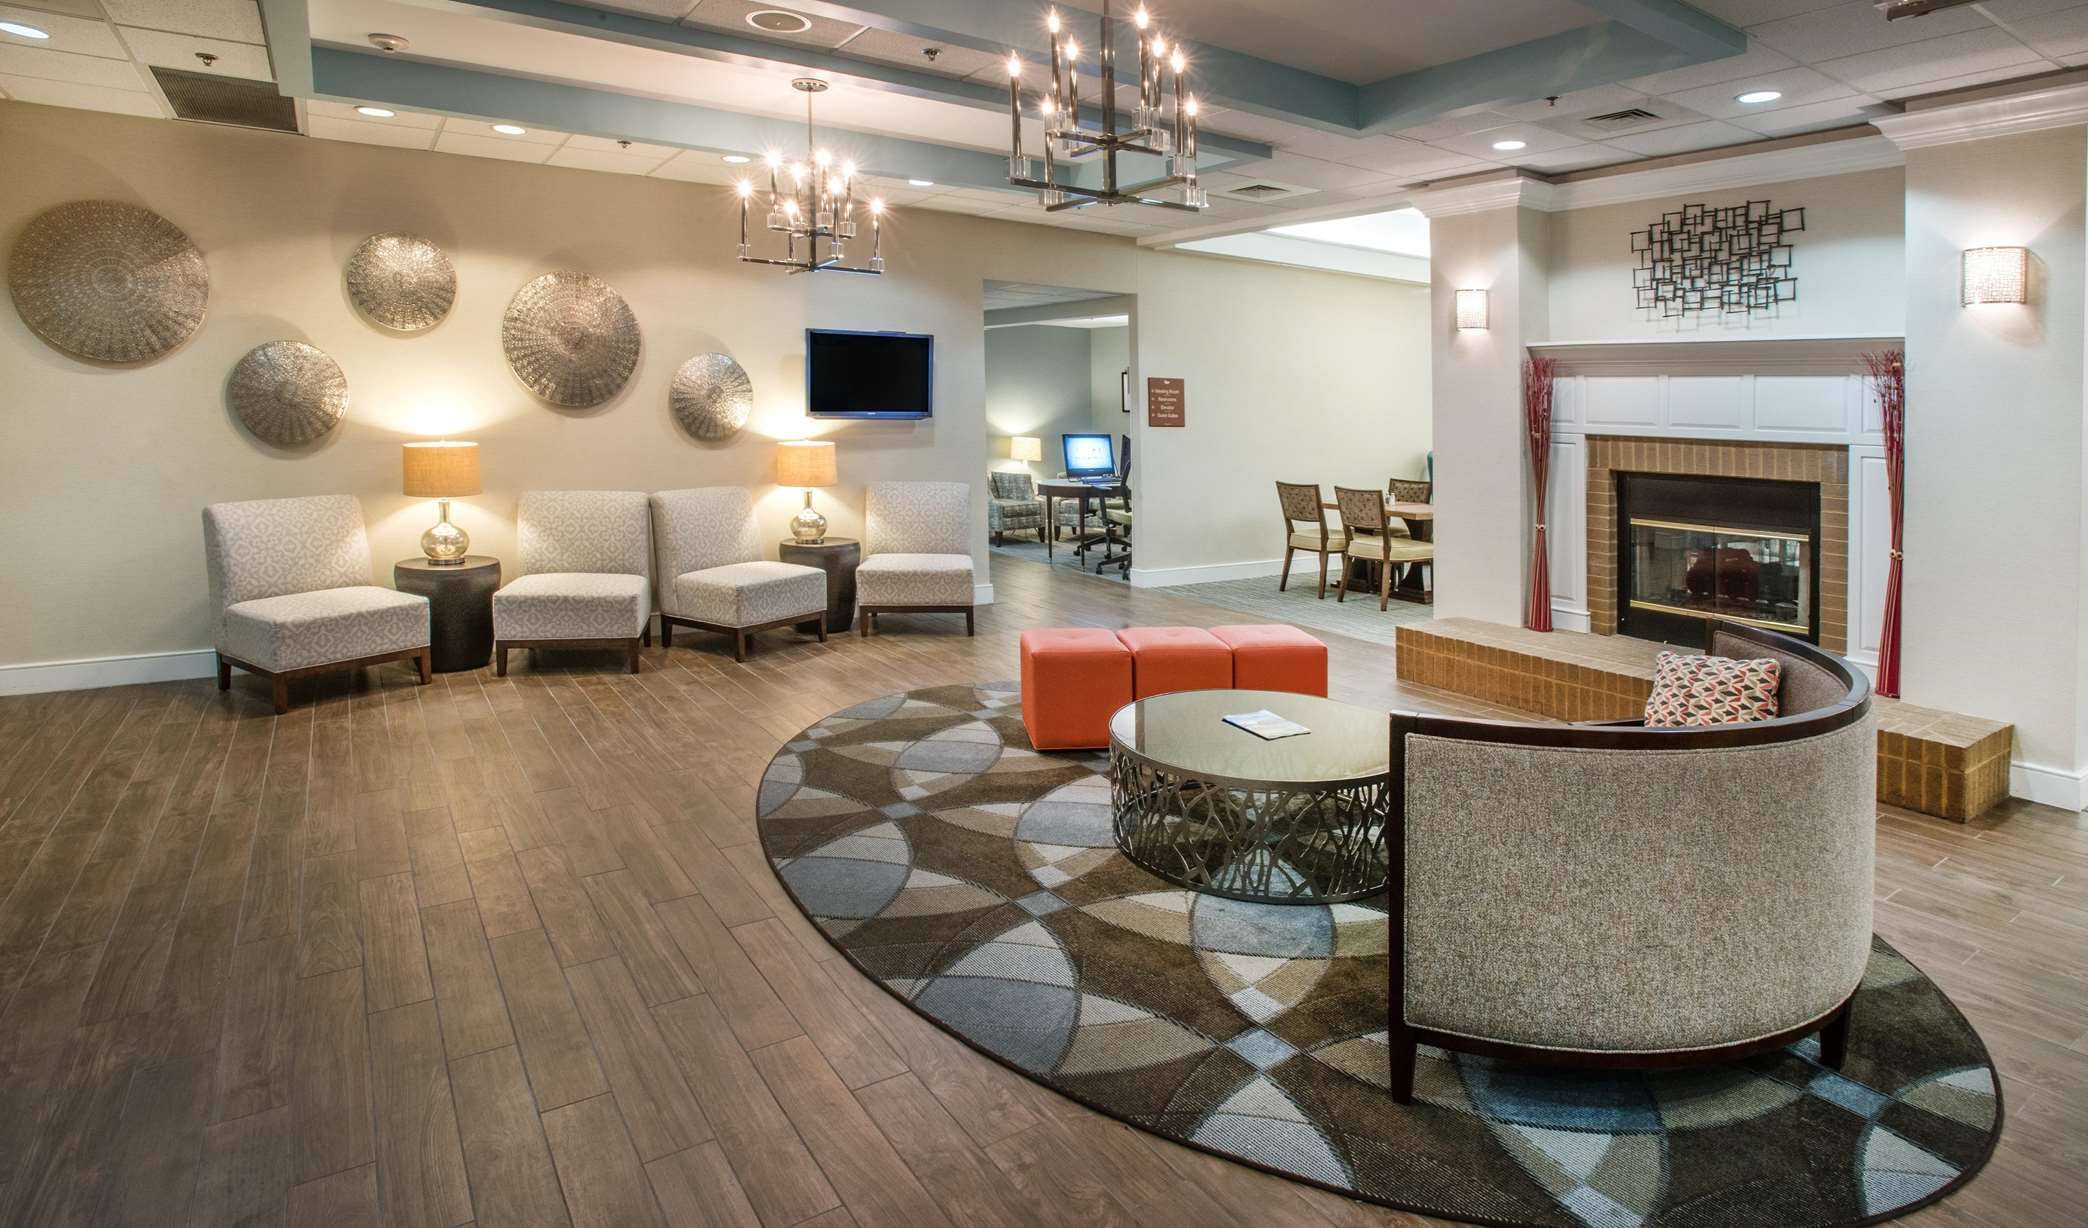 Homewood Suites by Hilton Montgomery image 2